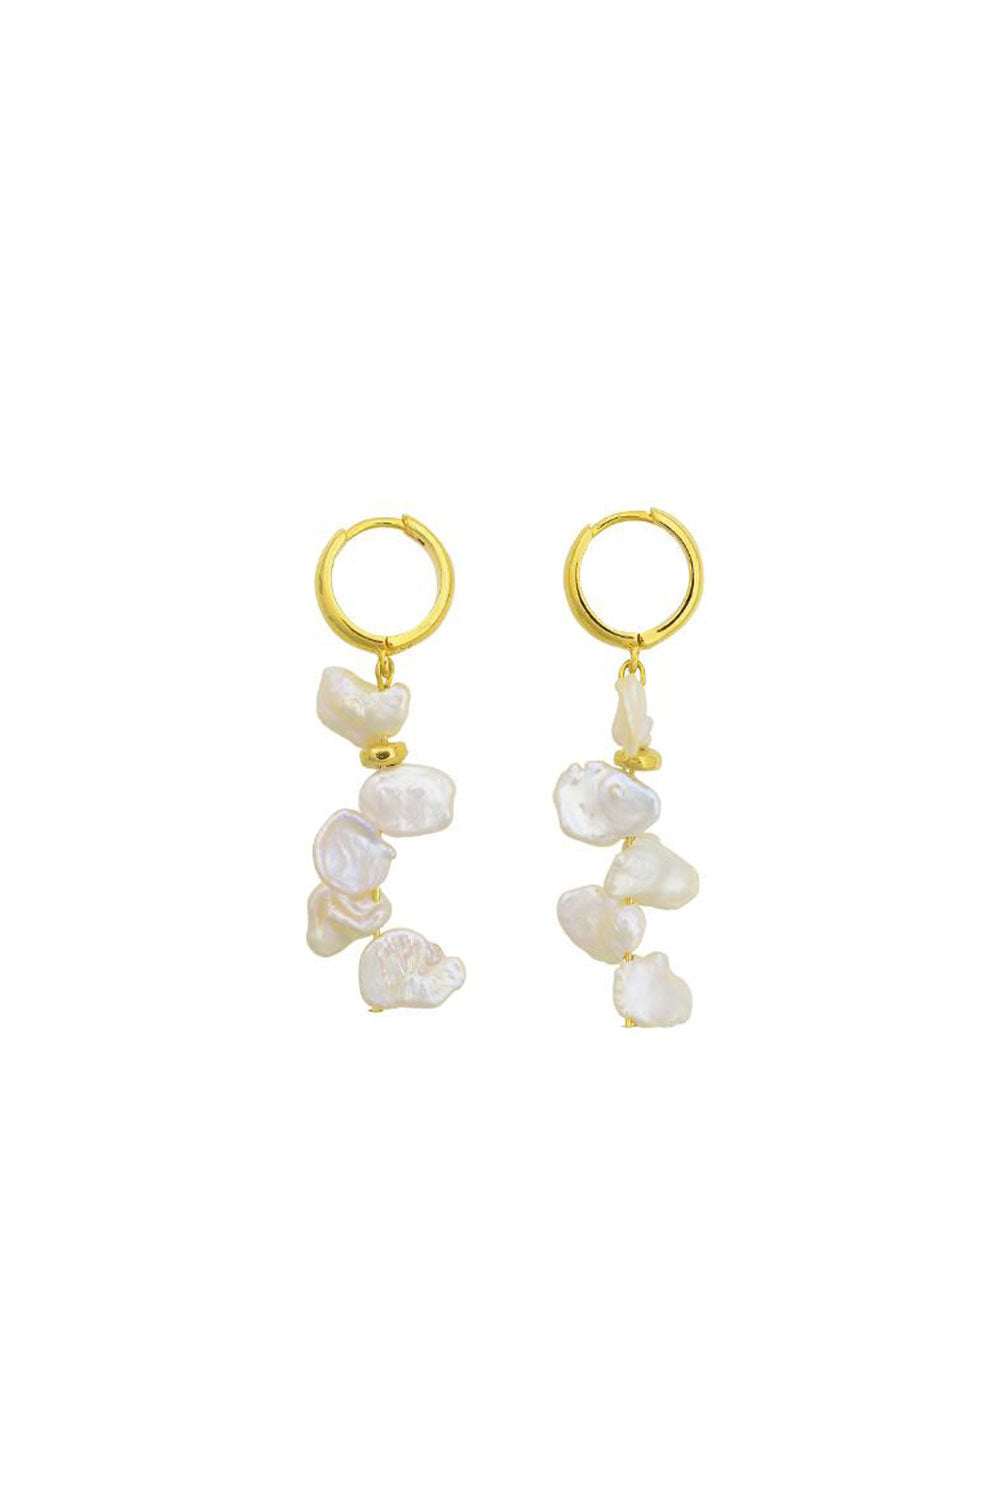 PEARL CLUSTER DROP EARRINGS | GOLD | BRIE LEON NZ | Jewellery NZ | Black Box Boutique Auckland | Womens Fashion NZ